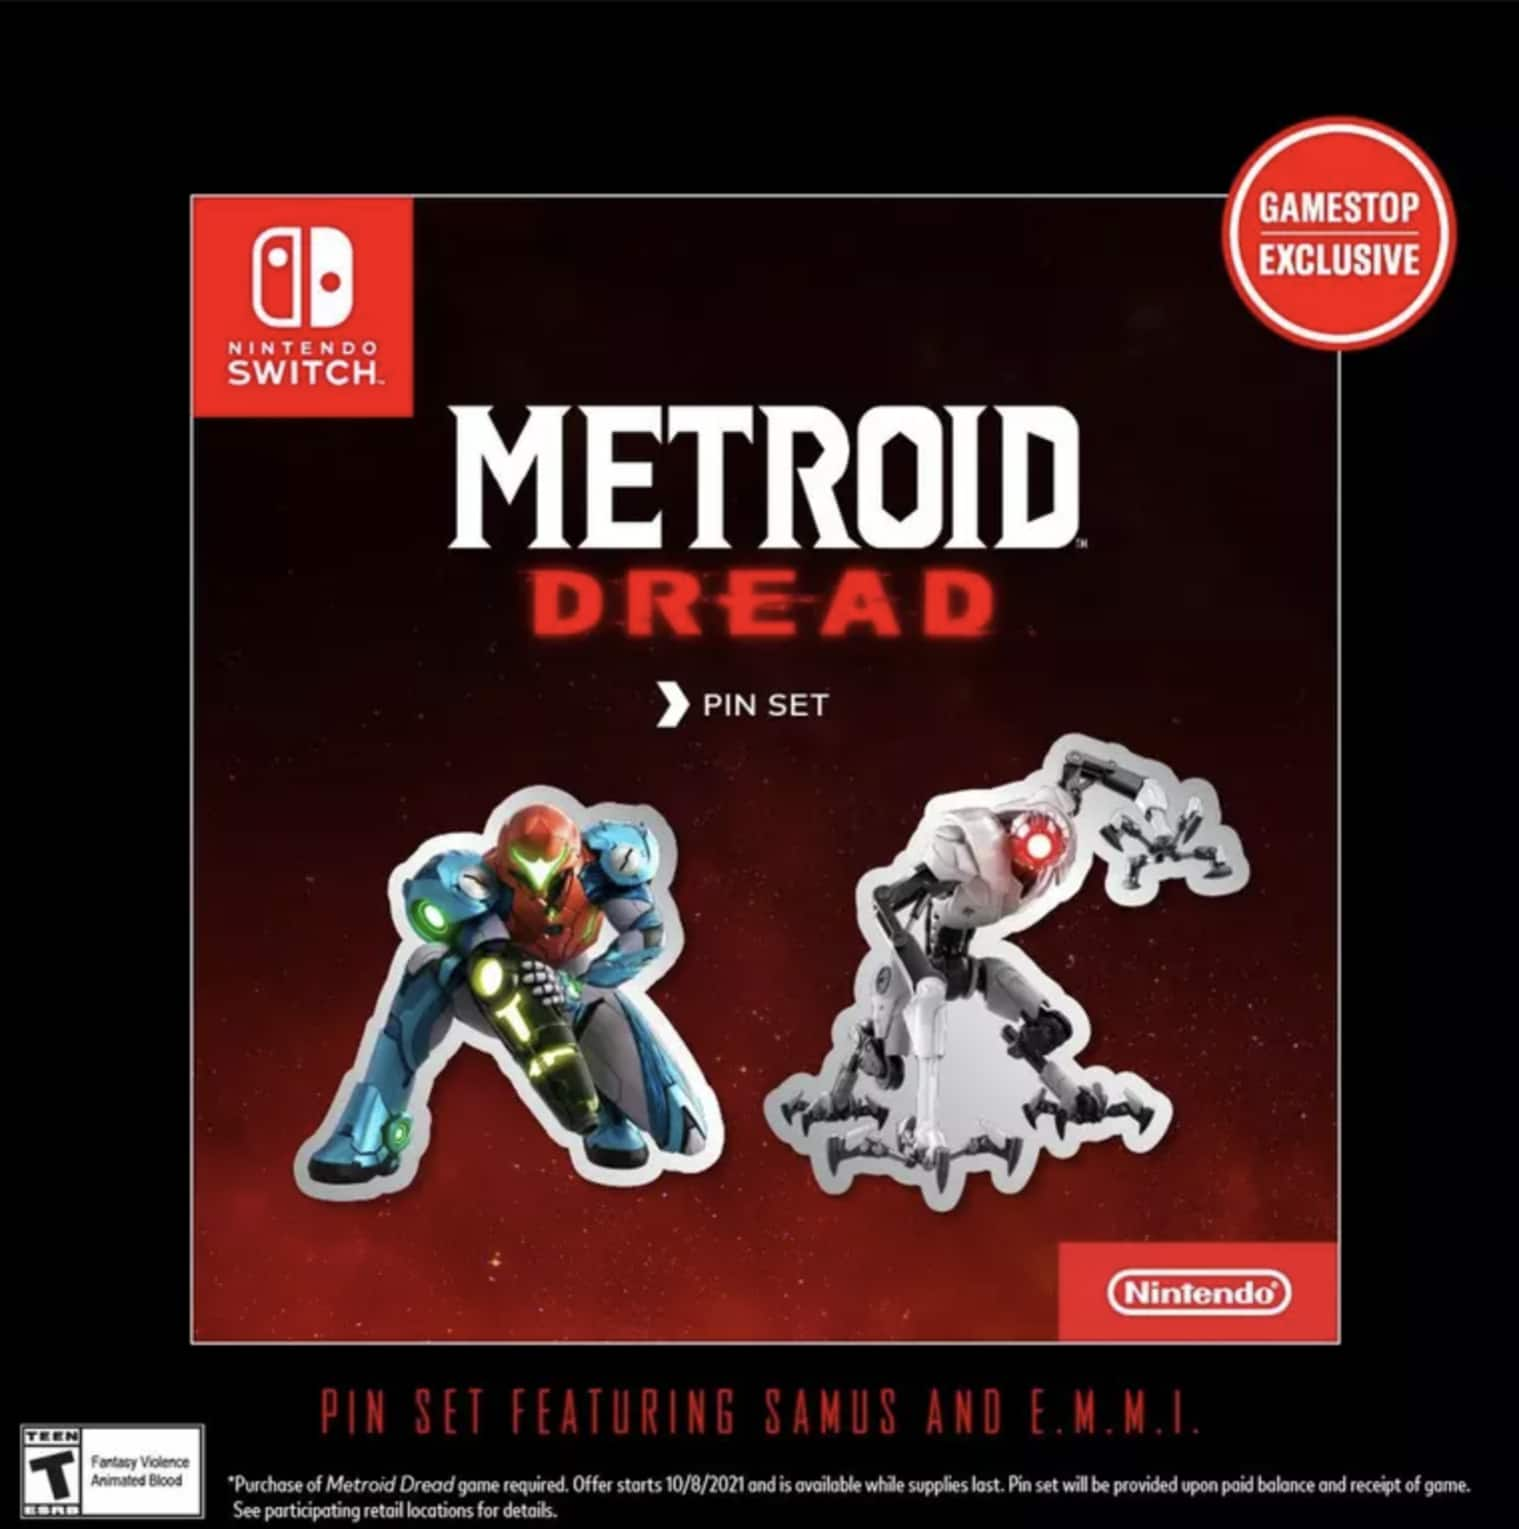 Pre-order and purchase Metroid Dread at GameStop and receive an exclusive Pin Set $59.99